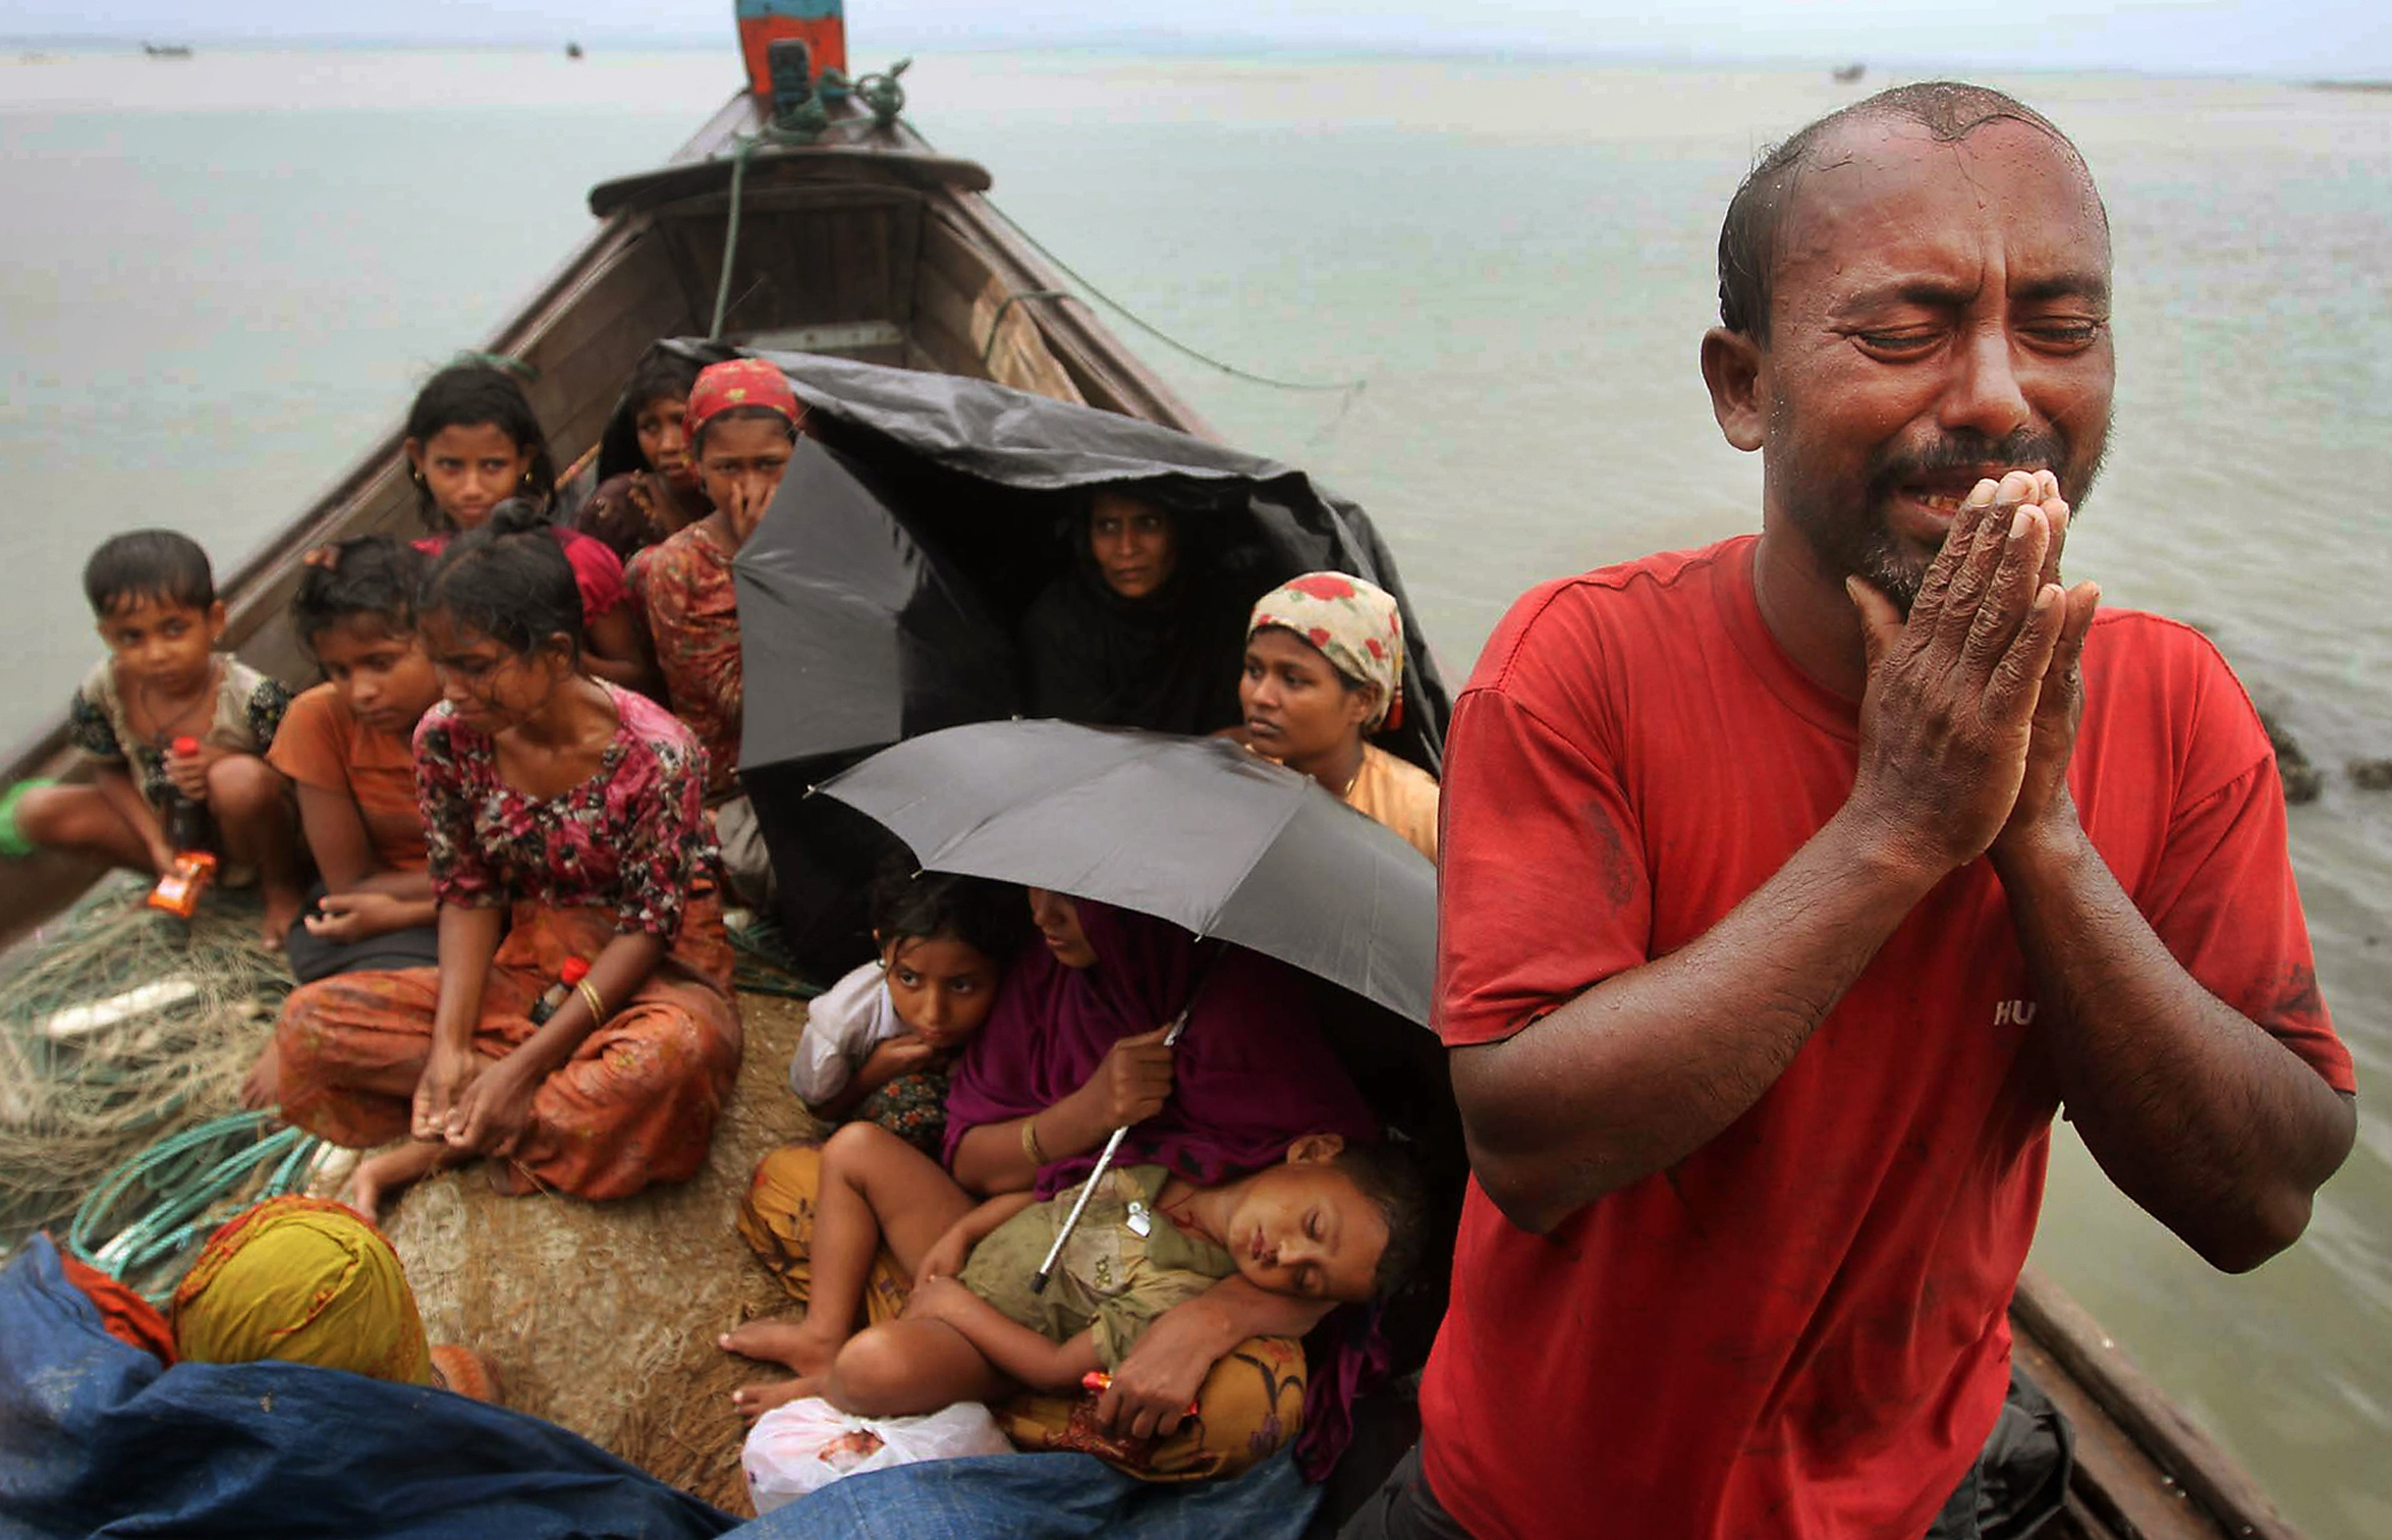 FILE - In this June 13, 2012 file photo, a Rohingya Muslim man who fled Myanmar to Bangladesh to escape religious violence, cries as he pleads from a boat after he and others were intercepted by Bangladeshi border authorities in Taknaf, Bangladesh. She is known as the voice of Myanmar's downtrodden but there is one oppressed group that Aung San Suu Kyi does not want to discuss. For weeks, Suu Kyi has dodged questions on the plight of a Muslim minority known as the Rohingya, prompting rare criticism of the woman whose struggle for democracy and human rights in Myanmar have earned her a Nobel Peace Prize, and adoration worldwide. (AP Photo/Anurup Titu, File)